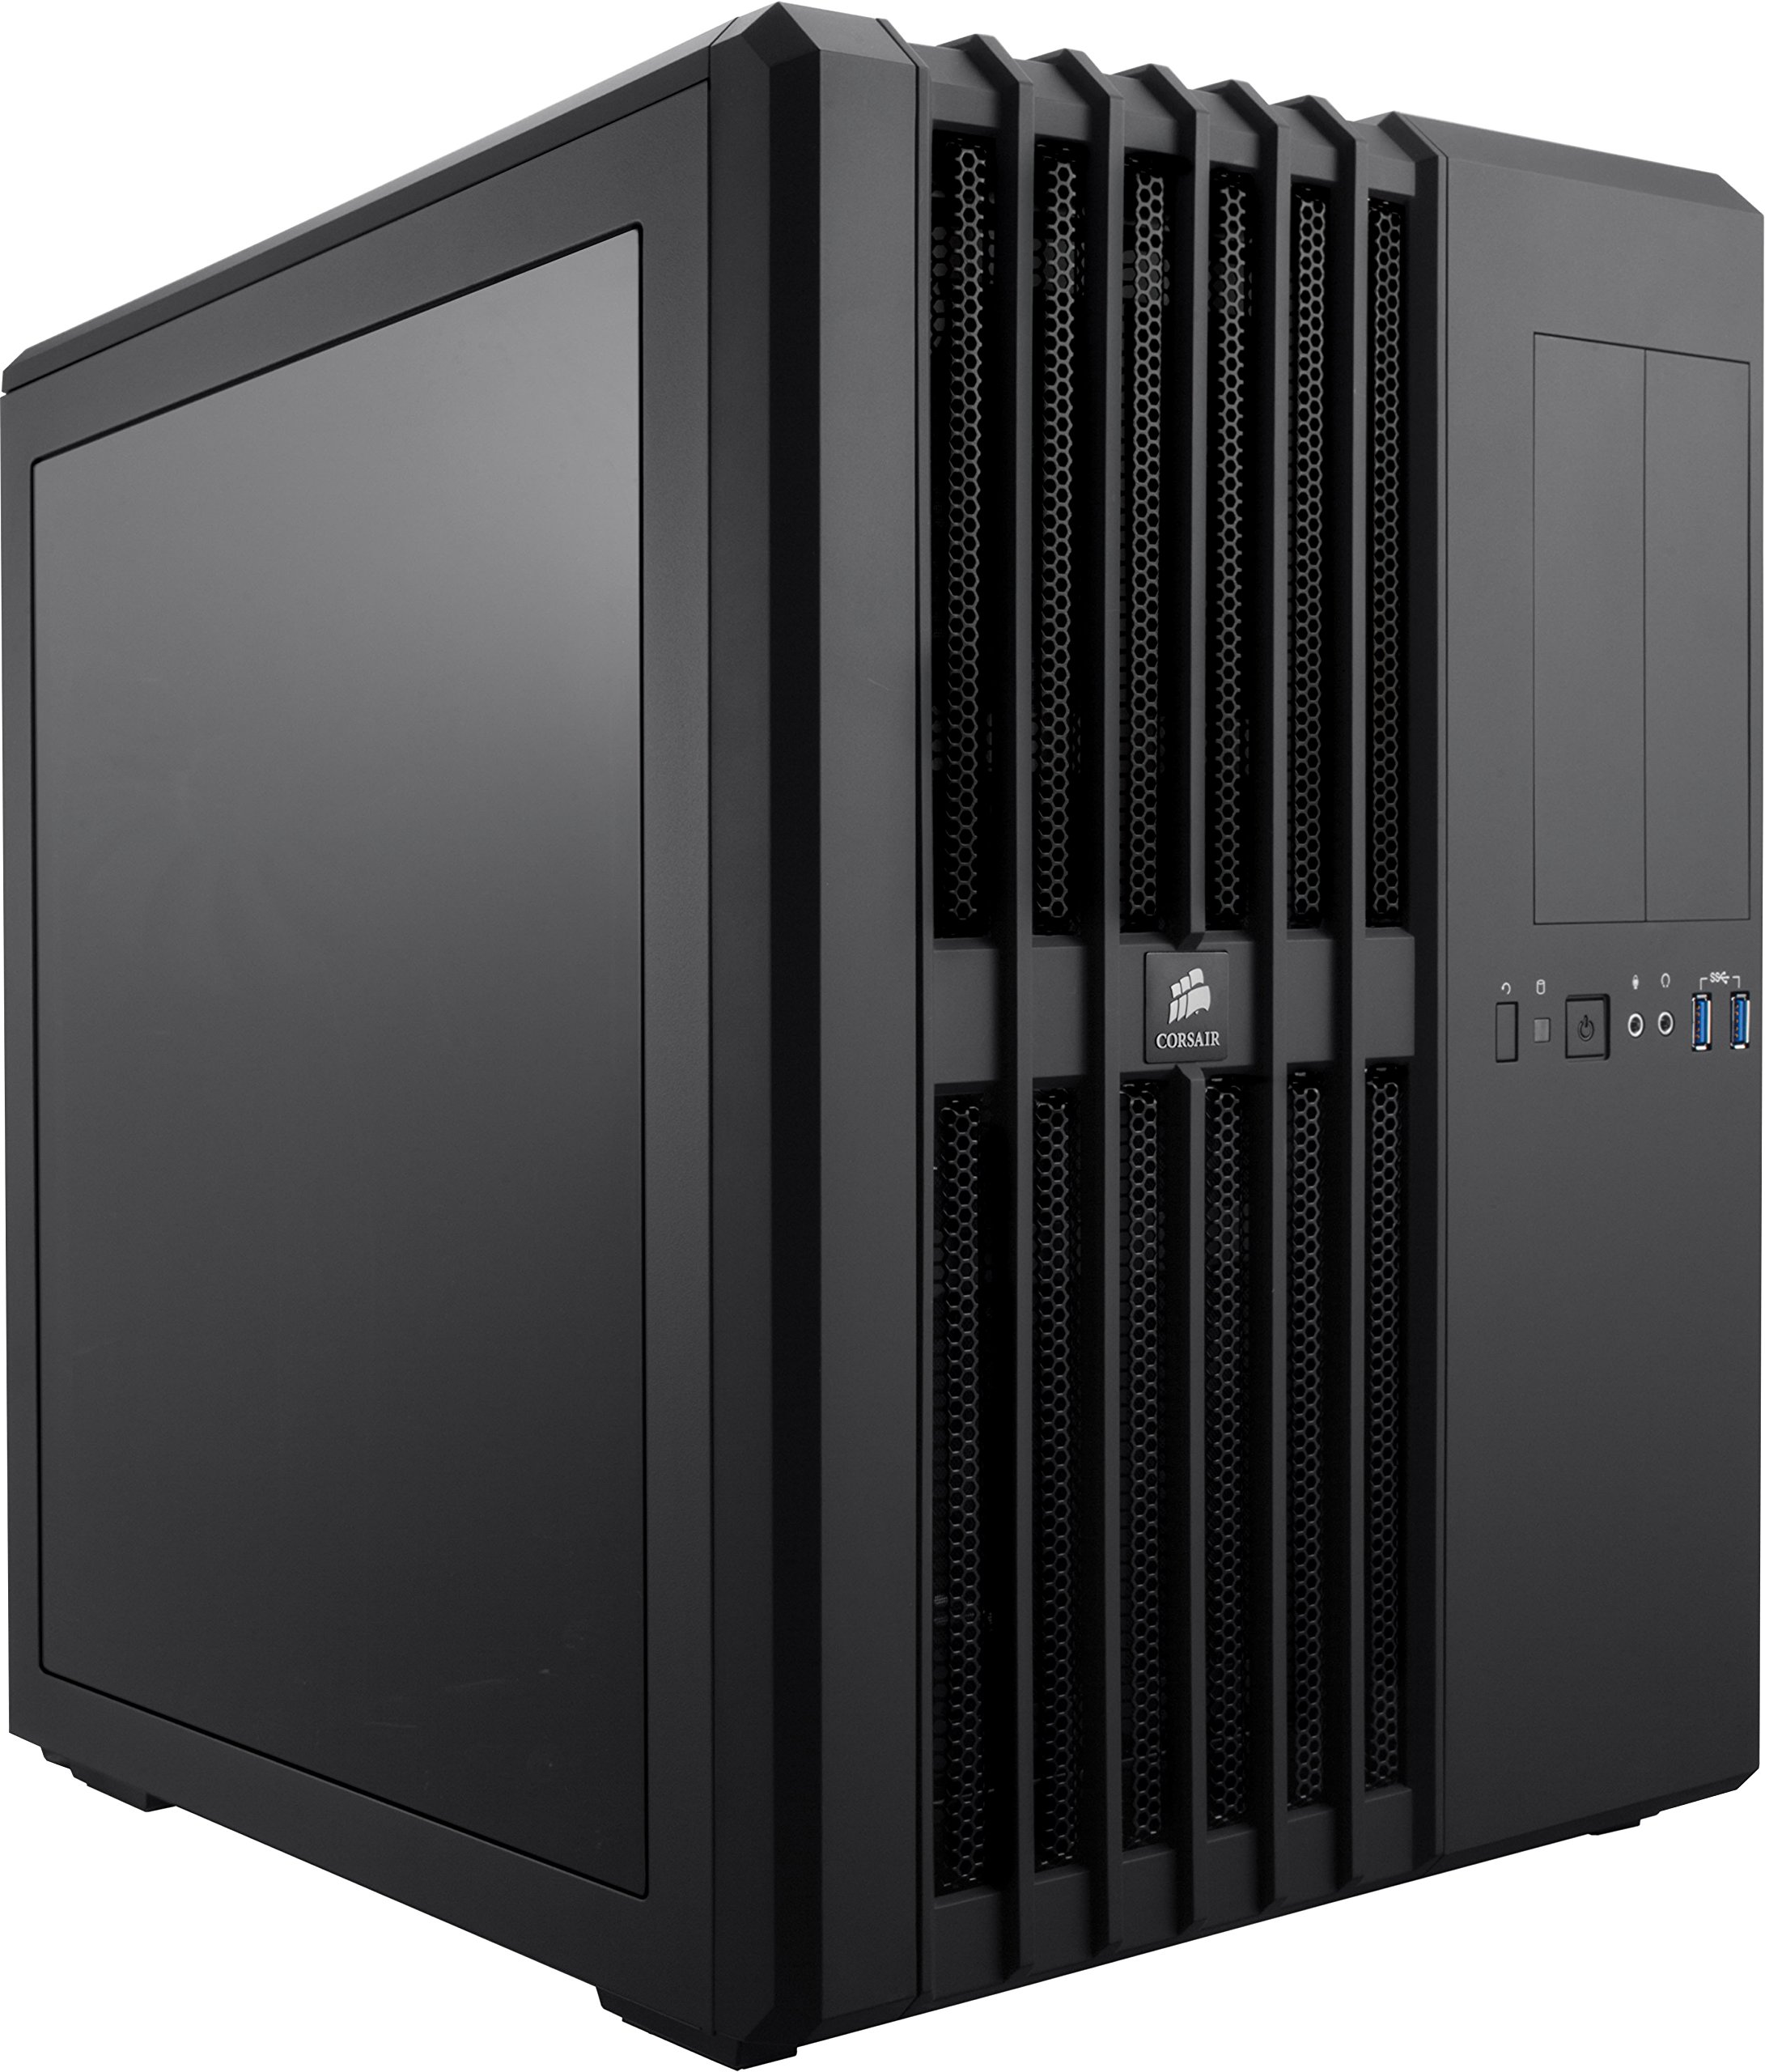 Corsair Carbide Series Air 540 High Airflow ATX Cube Case  - Black by Corsair